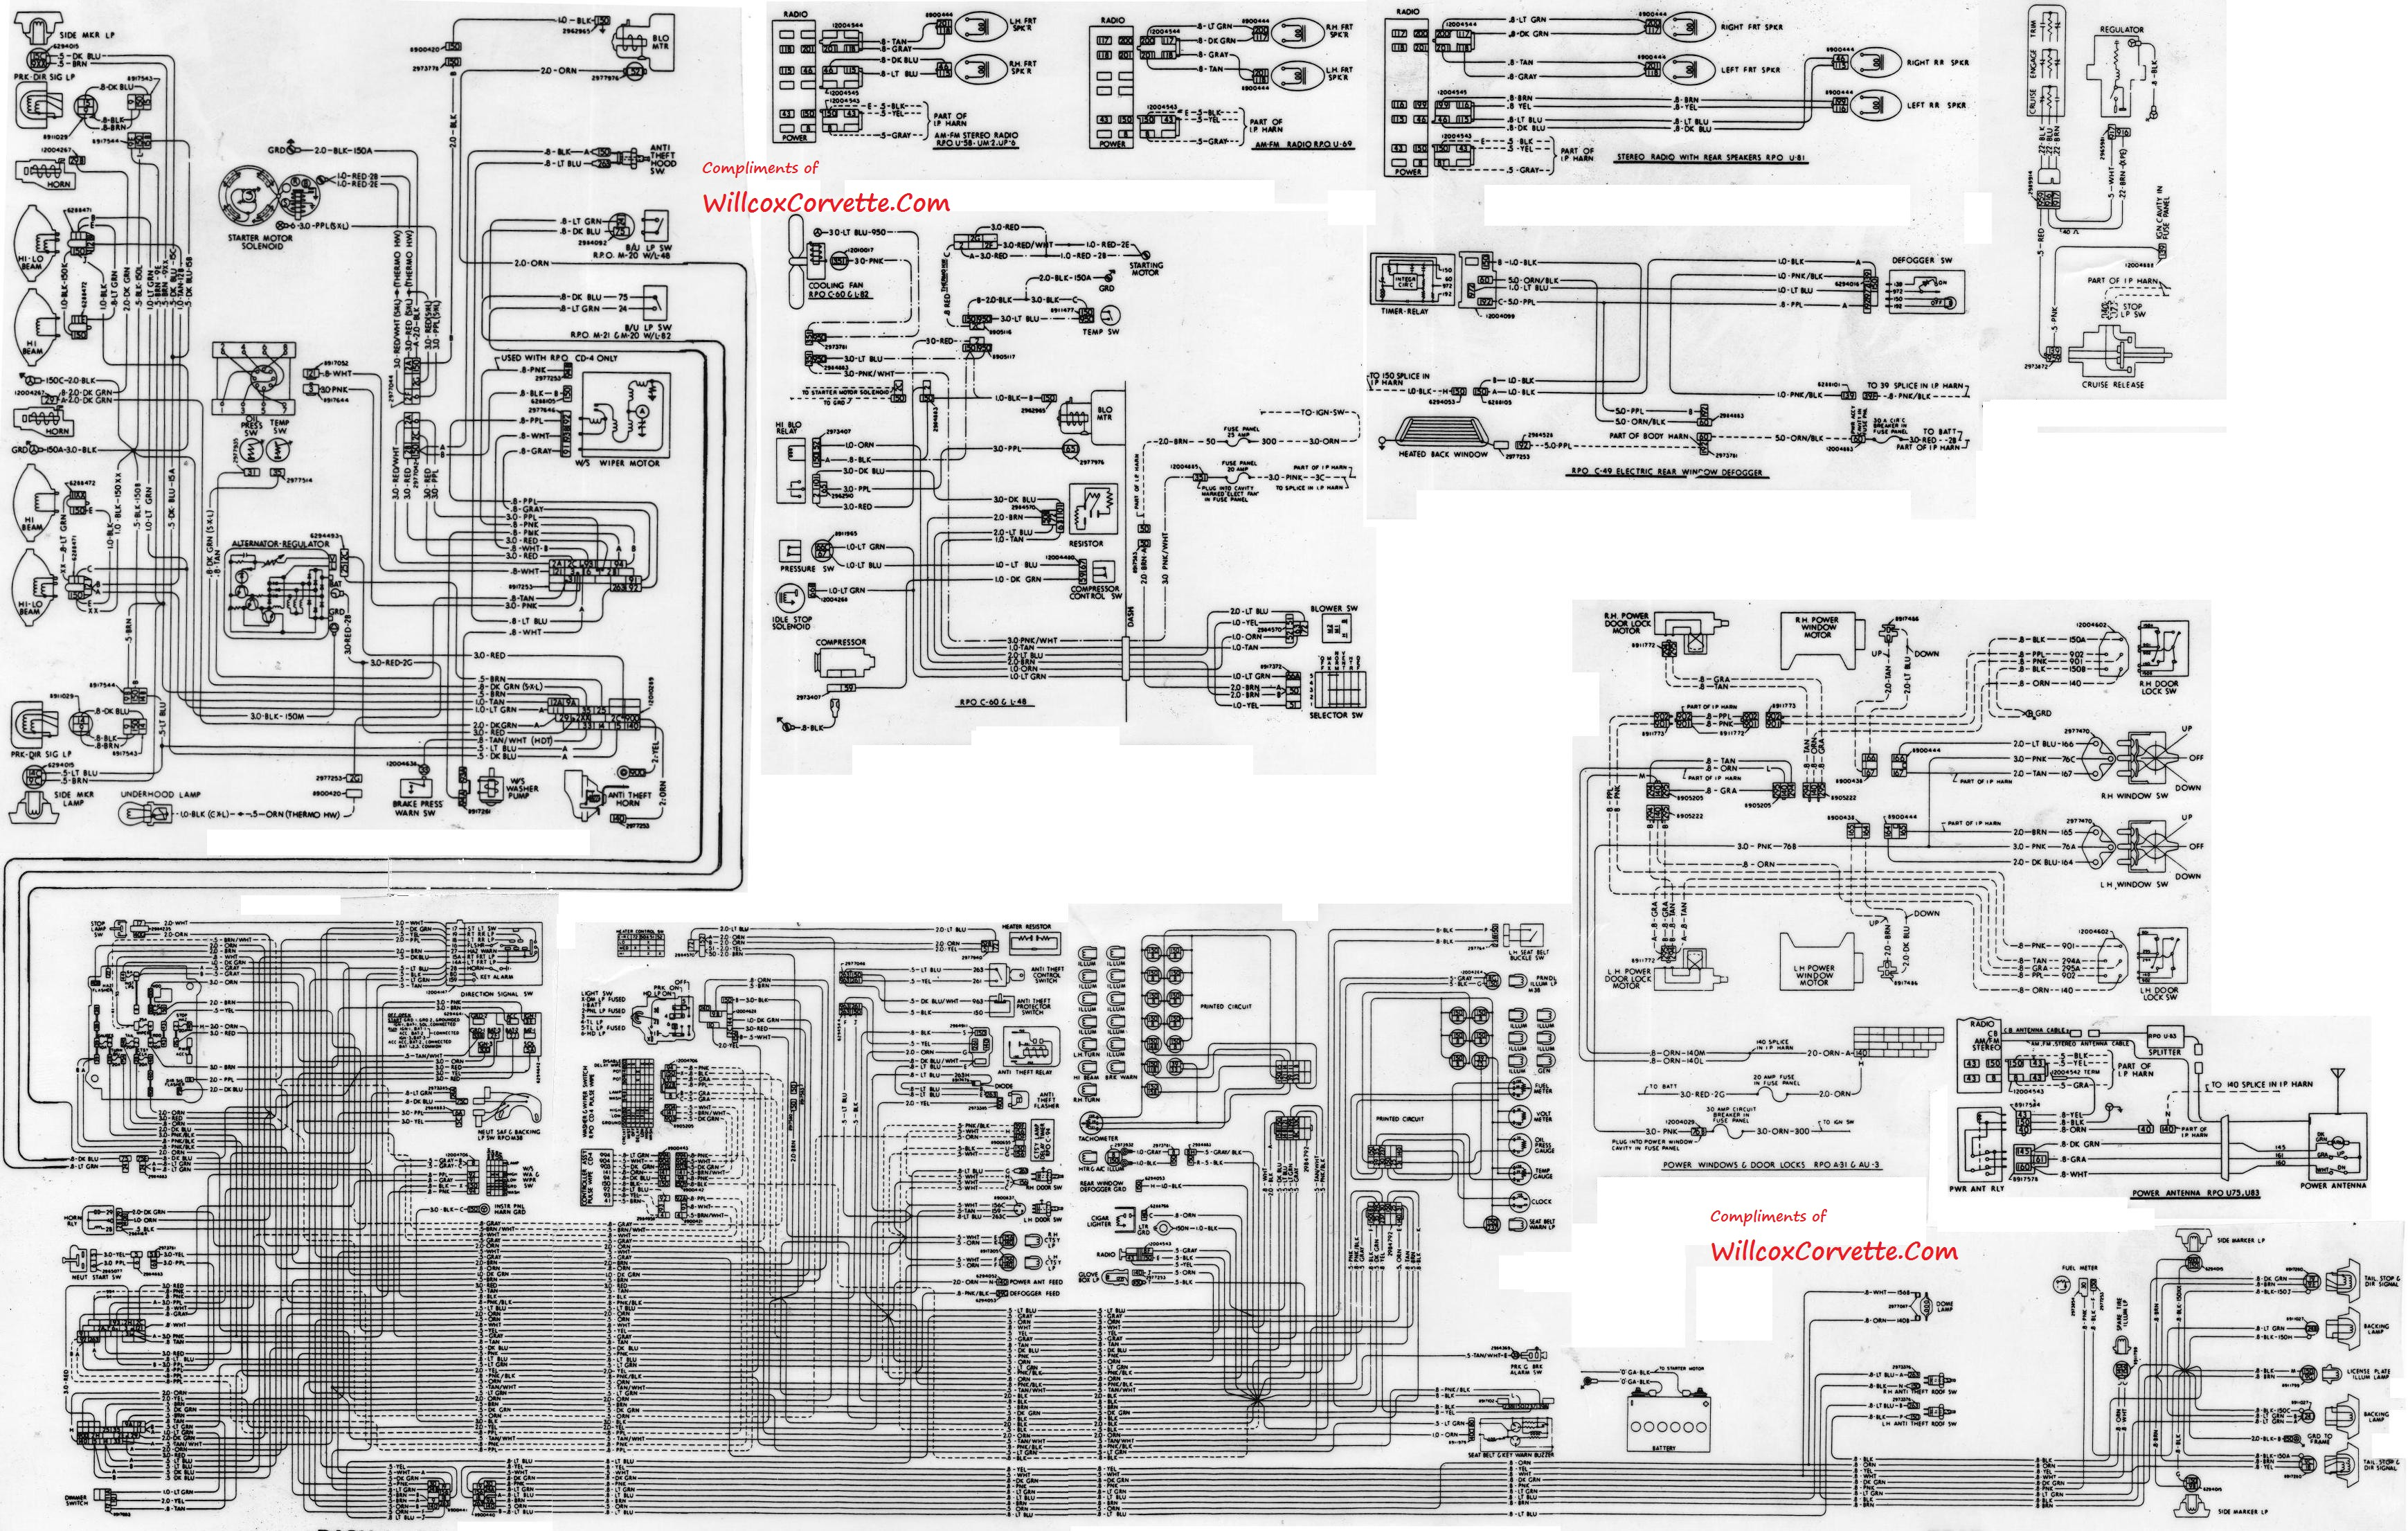 c4 corvette dash wiring diagram product wiring diagrams u2022 rh genesisventures us 1966 Corvette Wiring Diagram 1957 Corvette with Fi Wiring